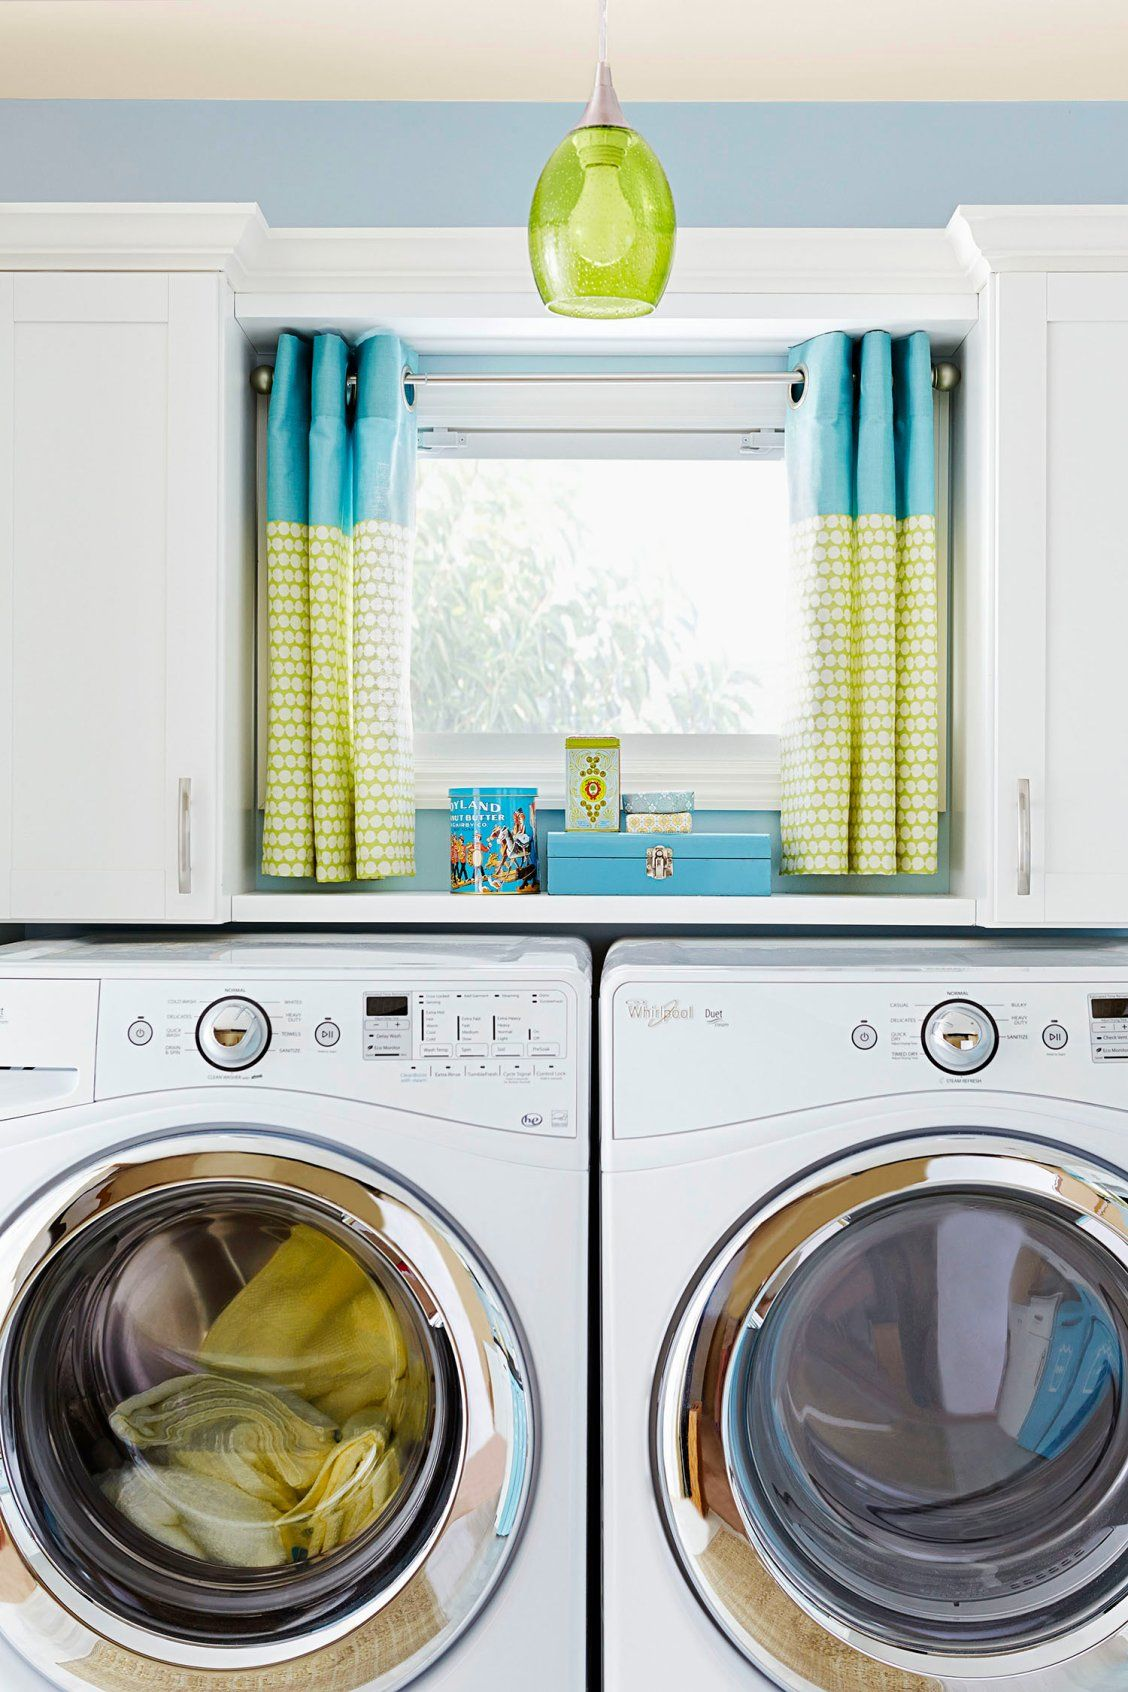 A Side By Side Washer And Dryer Maximize Counter Space Upper Cabinetry Hides Laundry Necessities Home Appliances Hidden Laundry Laundry Room